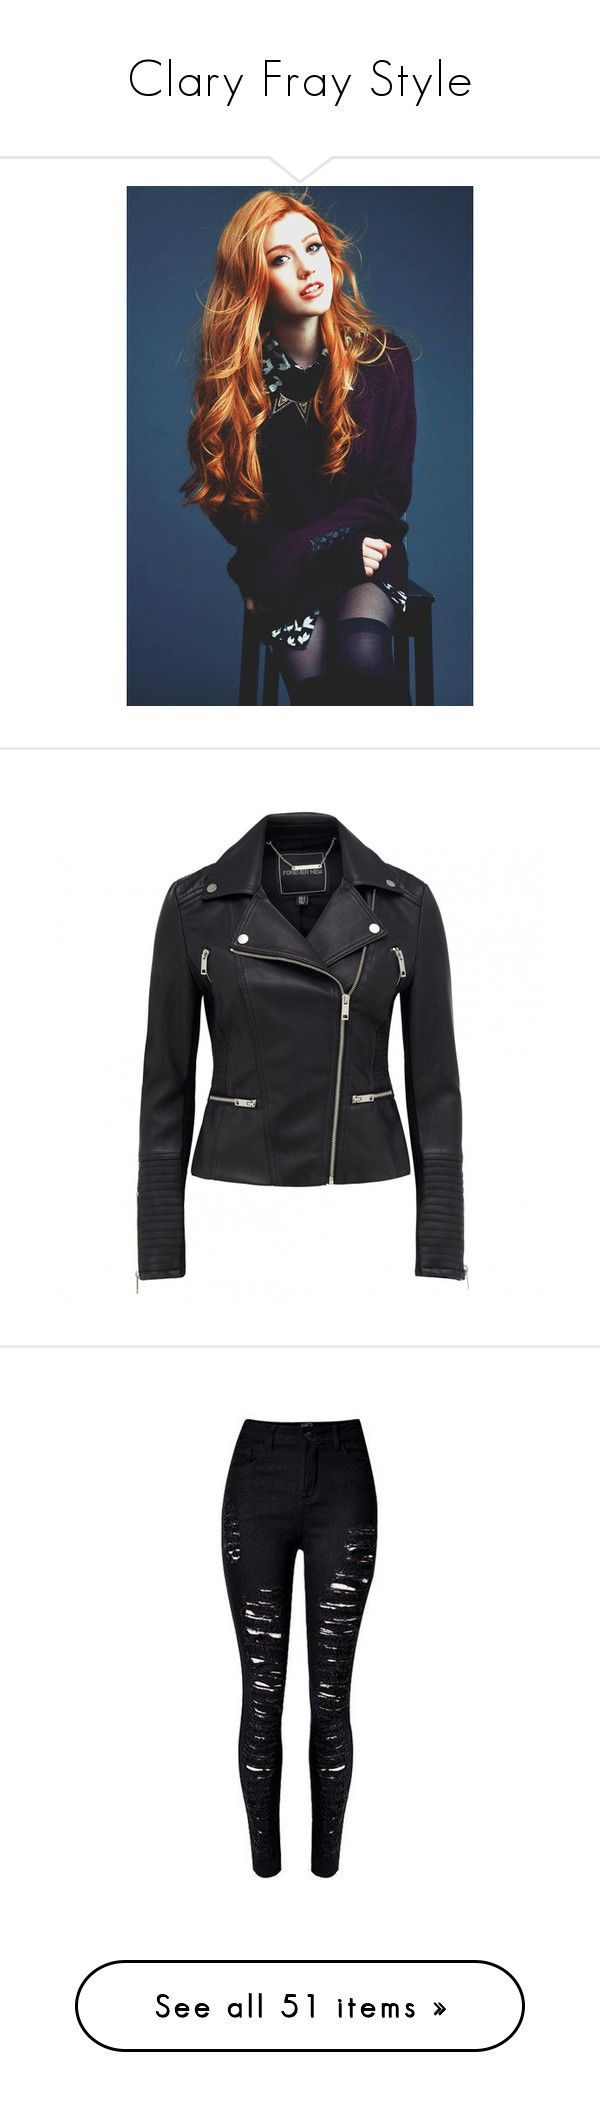 """""""Clary Fray Style"""" by souz-zverey ❤ liked on Polyvore featuring Inspired, TV, claryfray, shadowhunters, outerwear, jackets, imitation leather jacket, fake leather jacket, leather look jackets and rider jacket"""